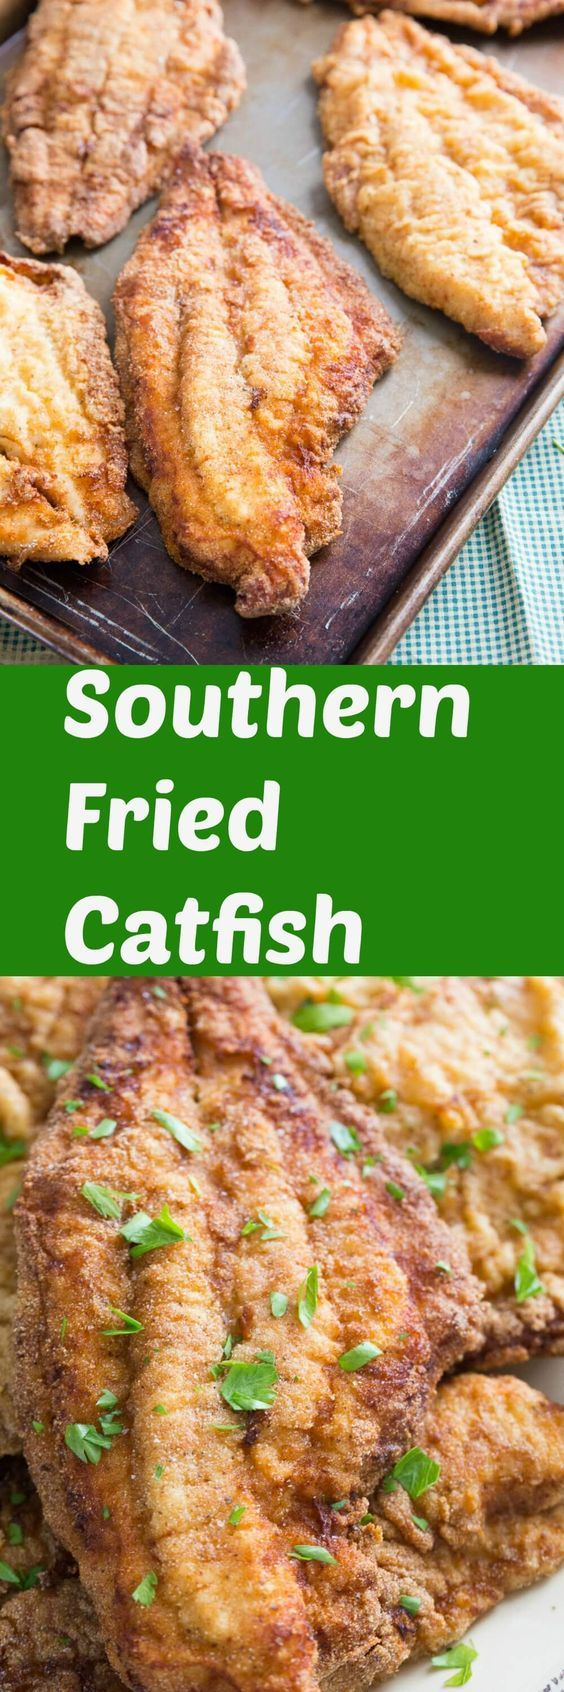 Who loves fried catfish?  This southern fried catfish recipe meets all the requirements of a good catfish recipe!  It is breaded for crispiness and has just the right amount of seasoning!  You are going to love it! via @Lemonsforlulu